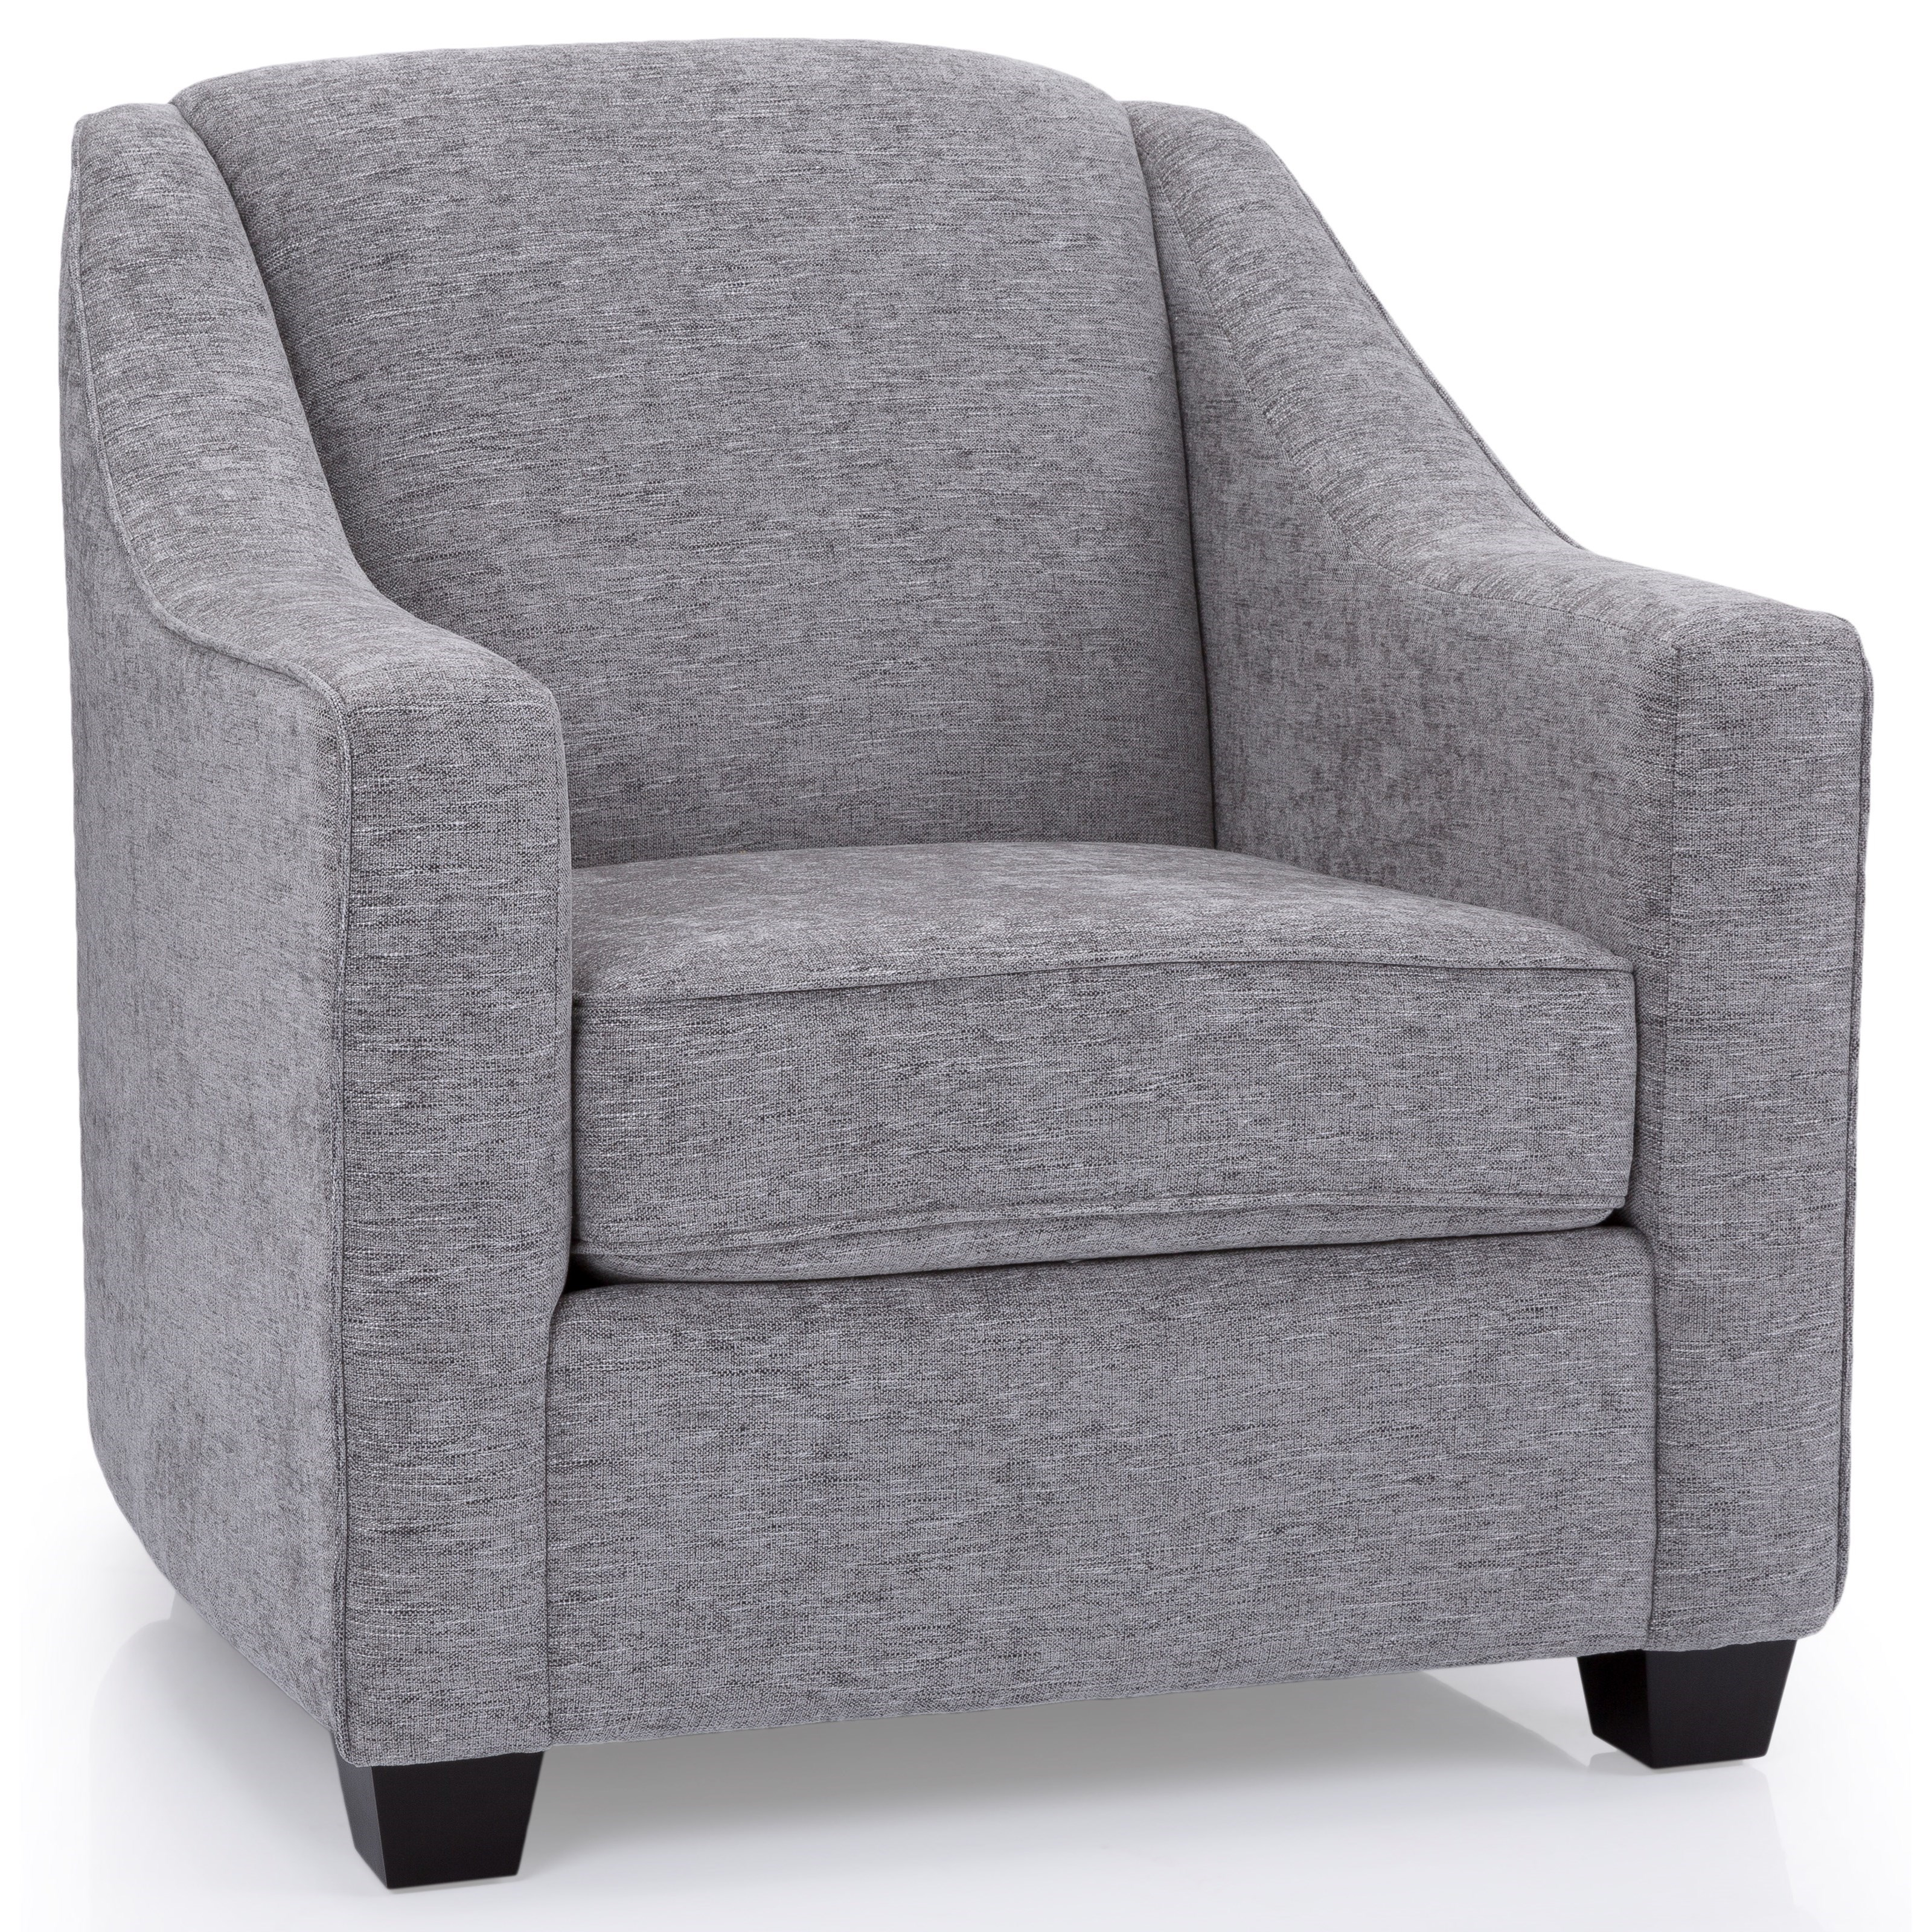 2934 Chair by Decor-Rest at Rooms for Less